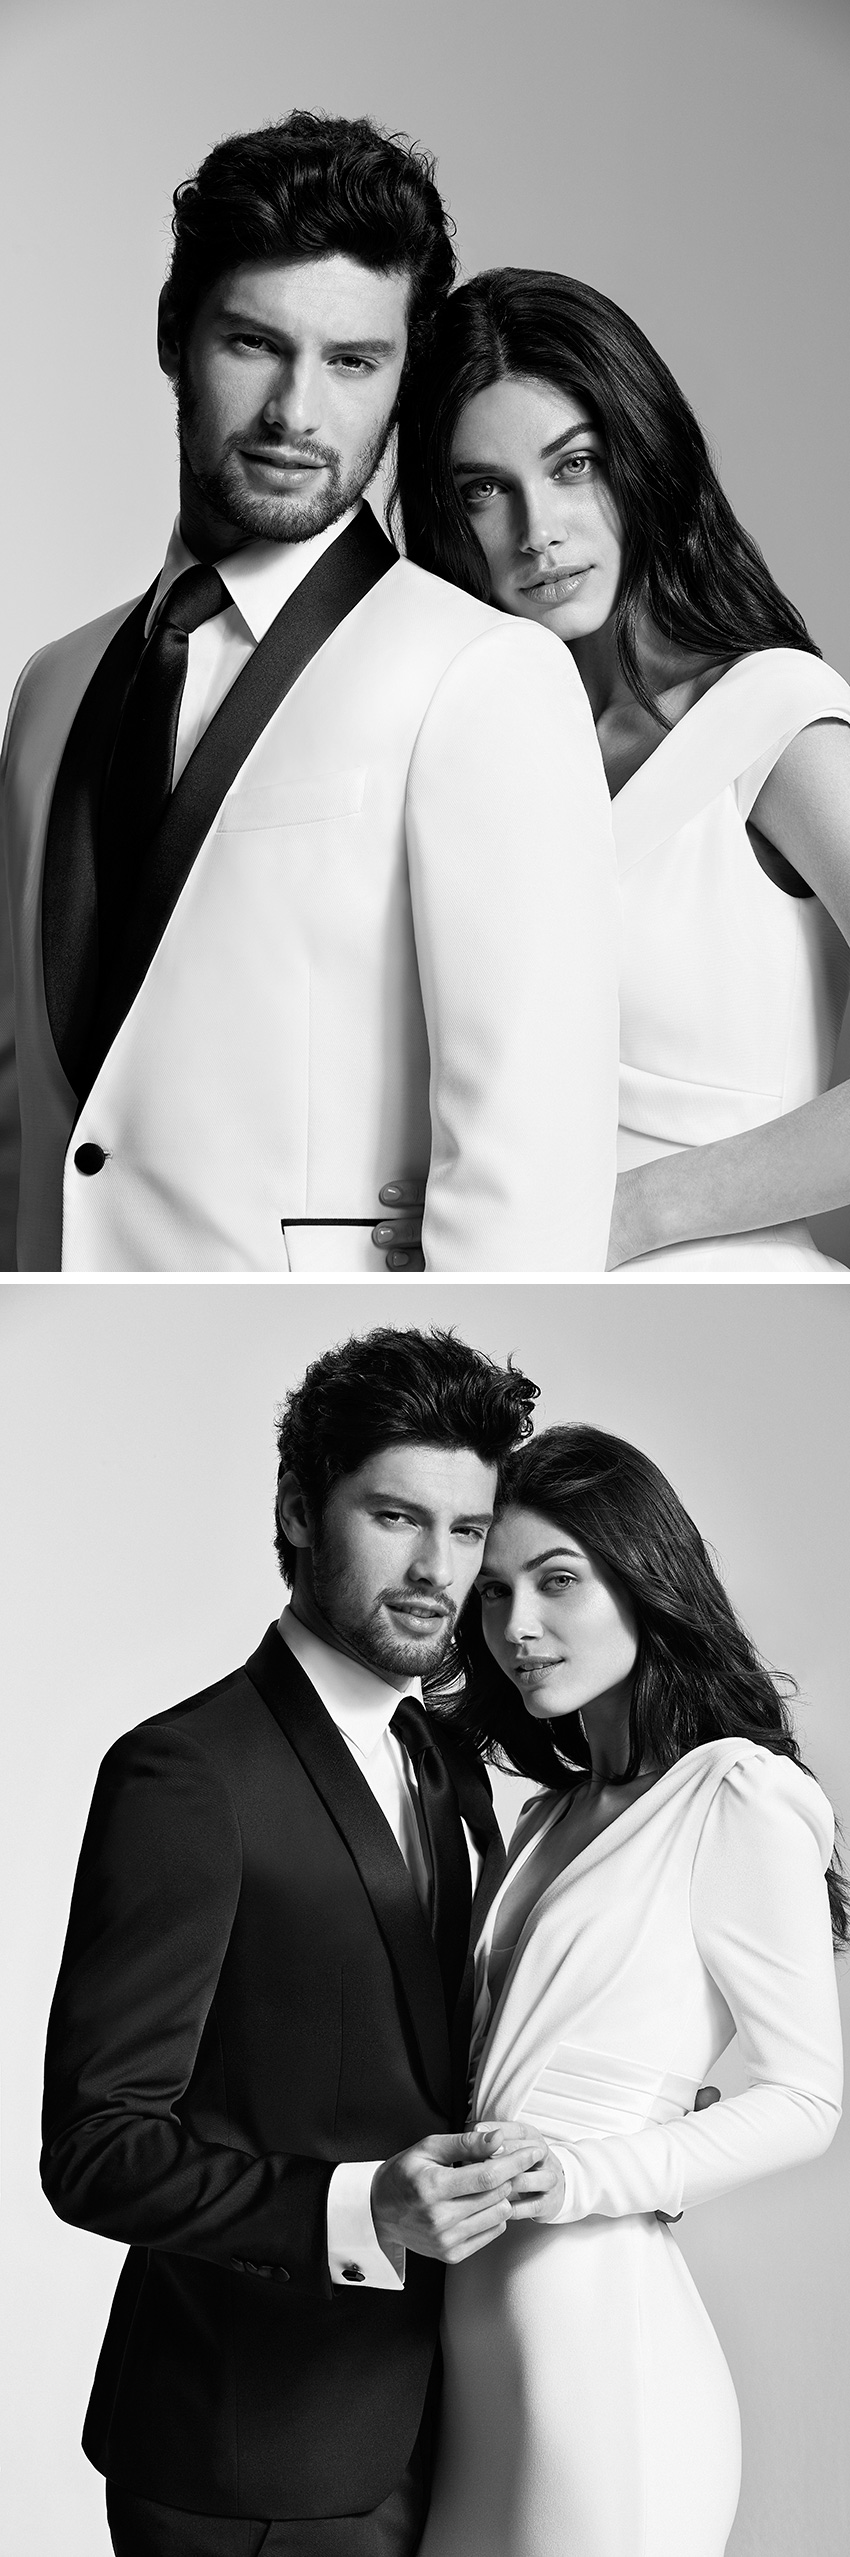 Italian Men's Fashion brand Carlo Pignatelli will design a special Groom's collection for Pronovias for the next 10 years featured in Perfect Wedding Magazine